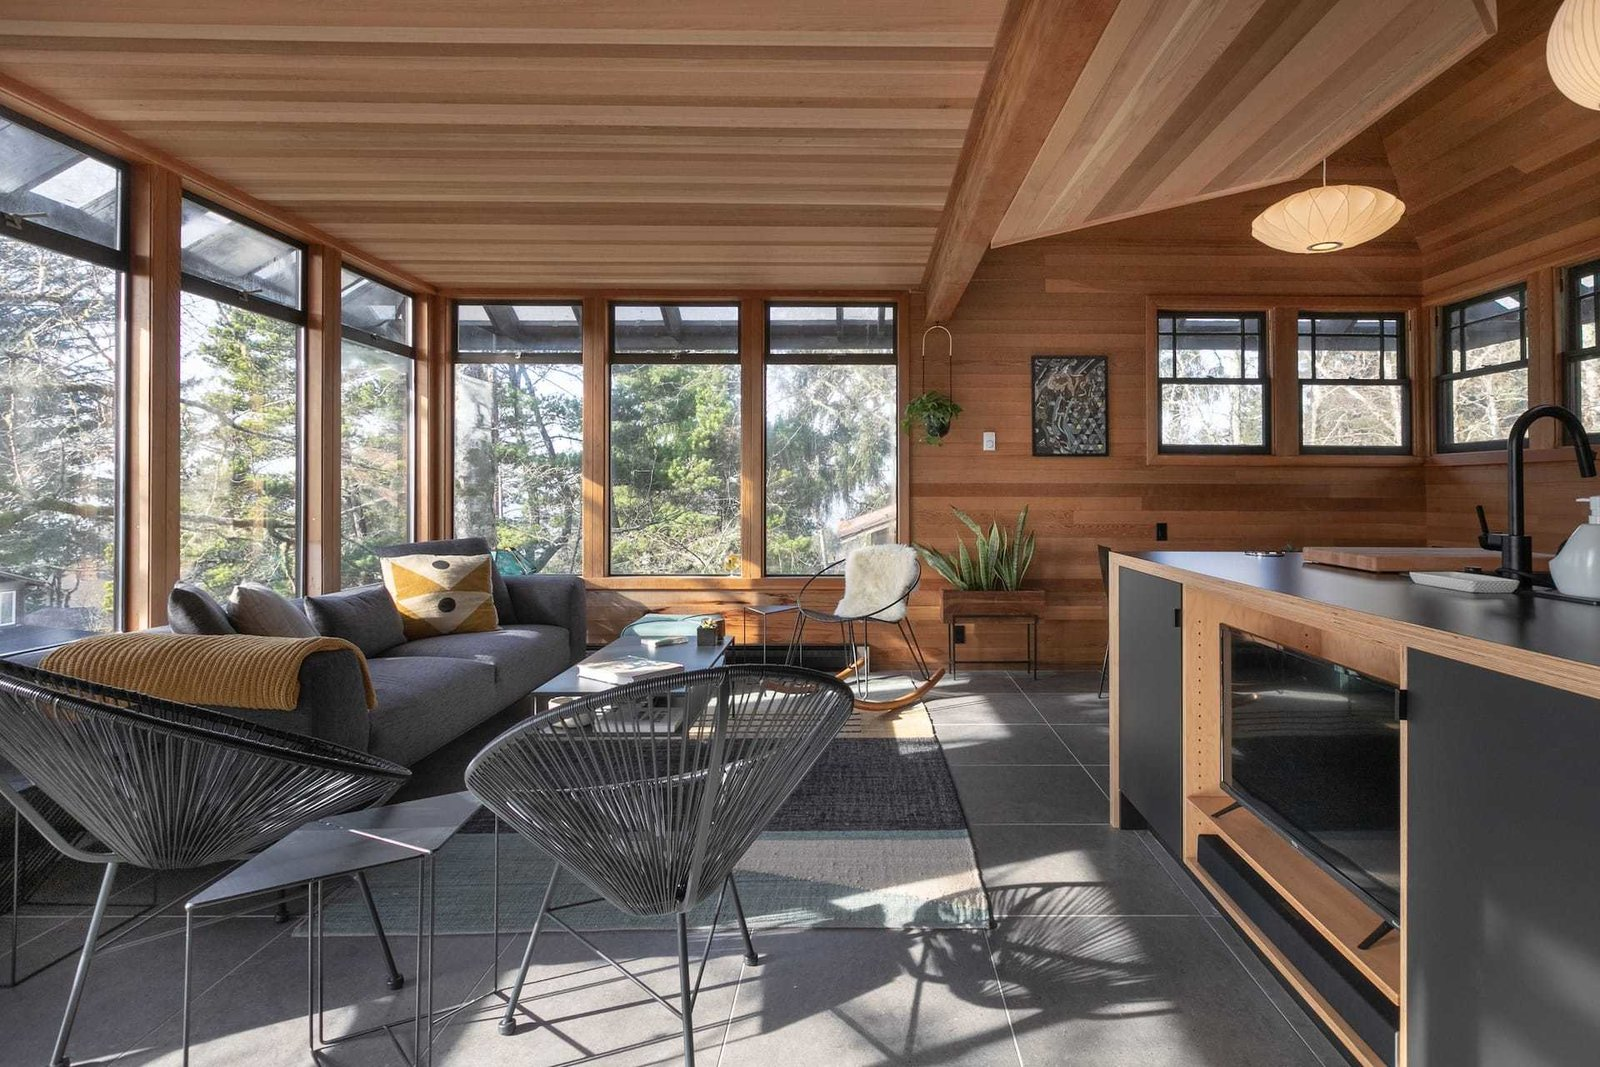 There are treehouse vibes galore in this wood-clad, three-story midcentury house—the entrance is reached by way of an elevated deck, for instance—propped on a hill above the sandy beach-strewn Manzanita. The hosts are designers, and so the interior is inviting and airy, with hues of gray and yellow playing with the abundance of natural light. It may feel secluded here, but Neahkahnie Beach, a more subdued alternative to kayaking at nearby Nehalem Bay State Park, is only a five-minute stroll away.  Photo 3 of 18 in 17 Dreamy and Rentable Retreats for a Pacific Northwest Escape